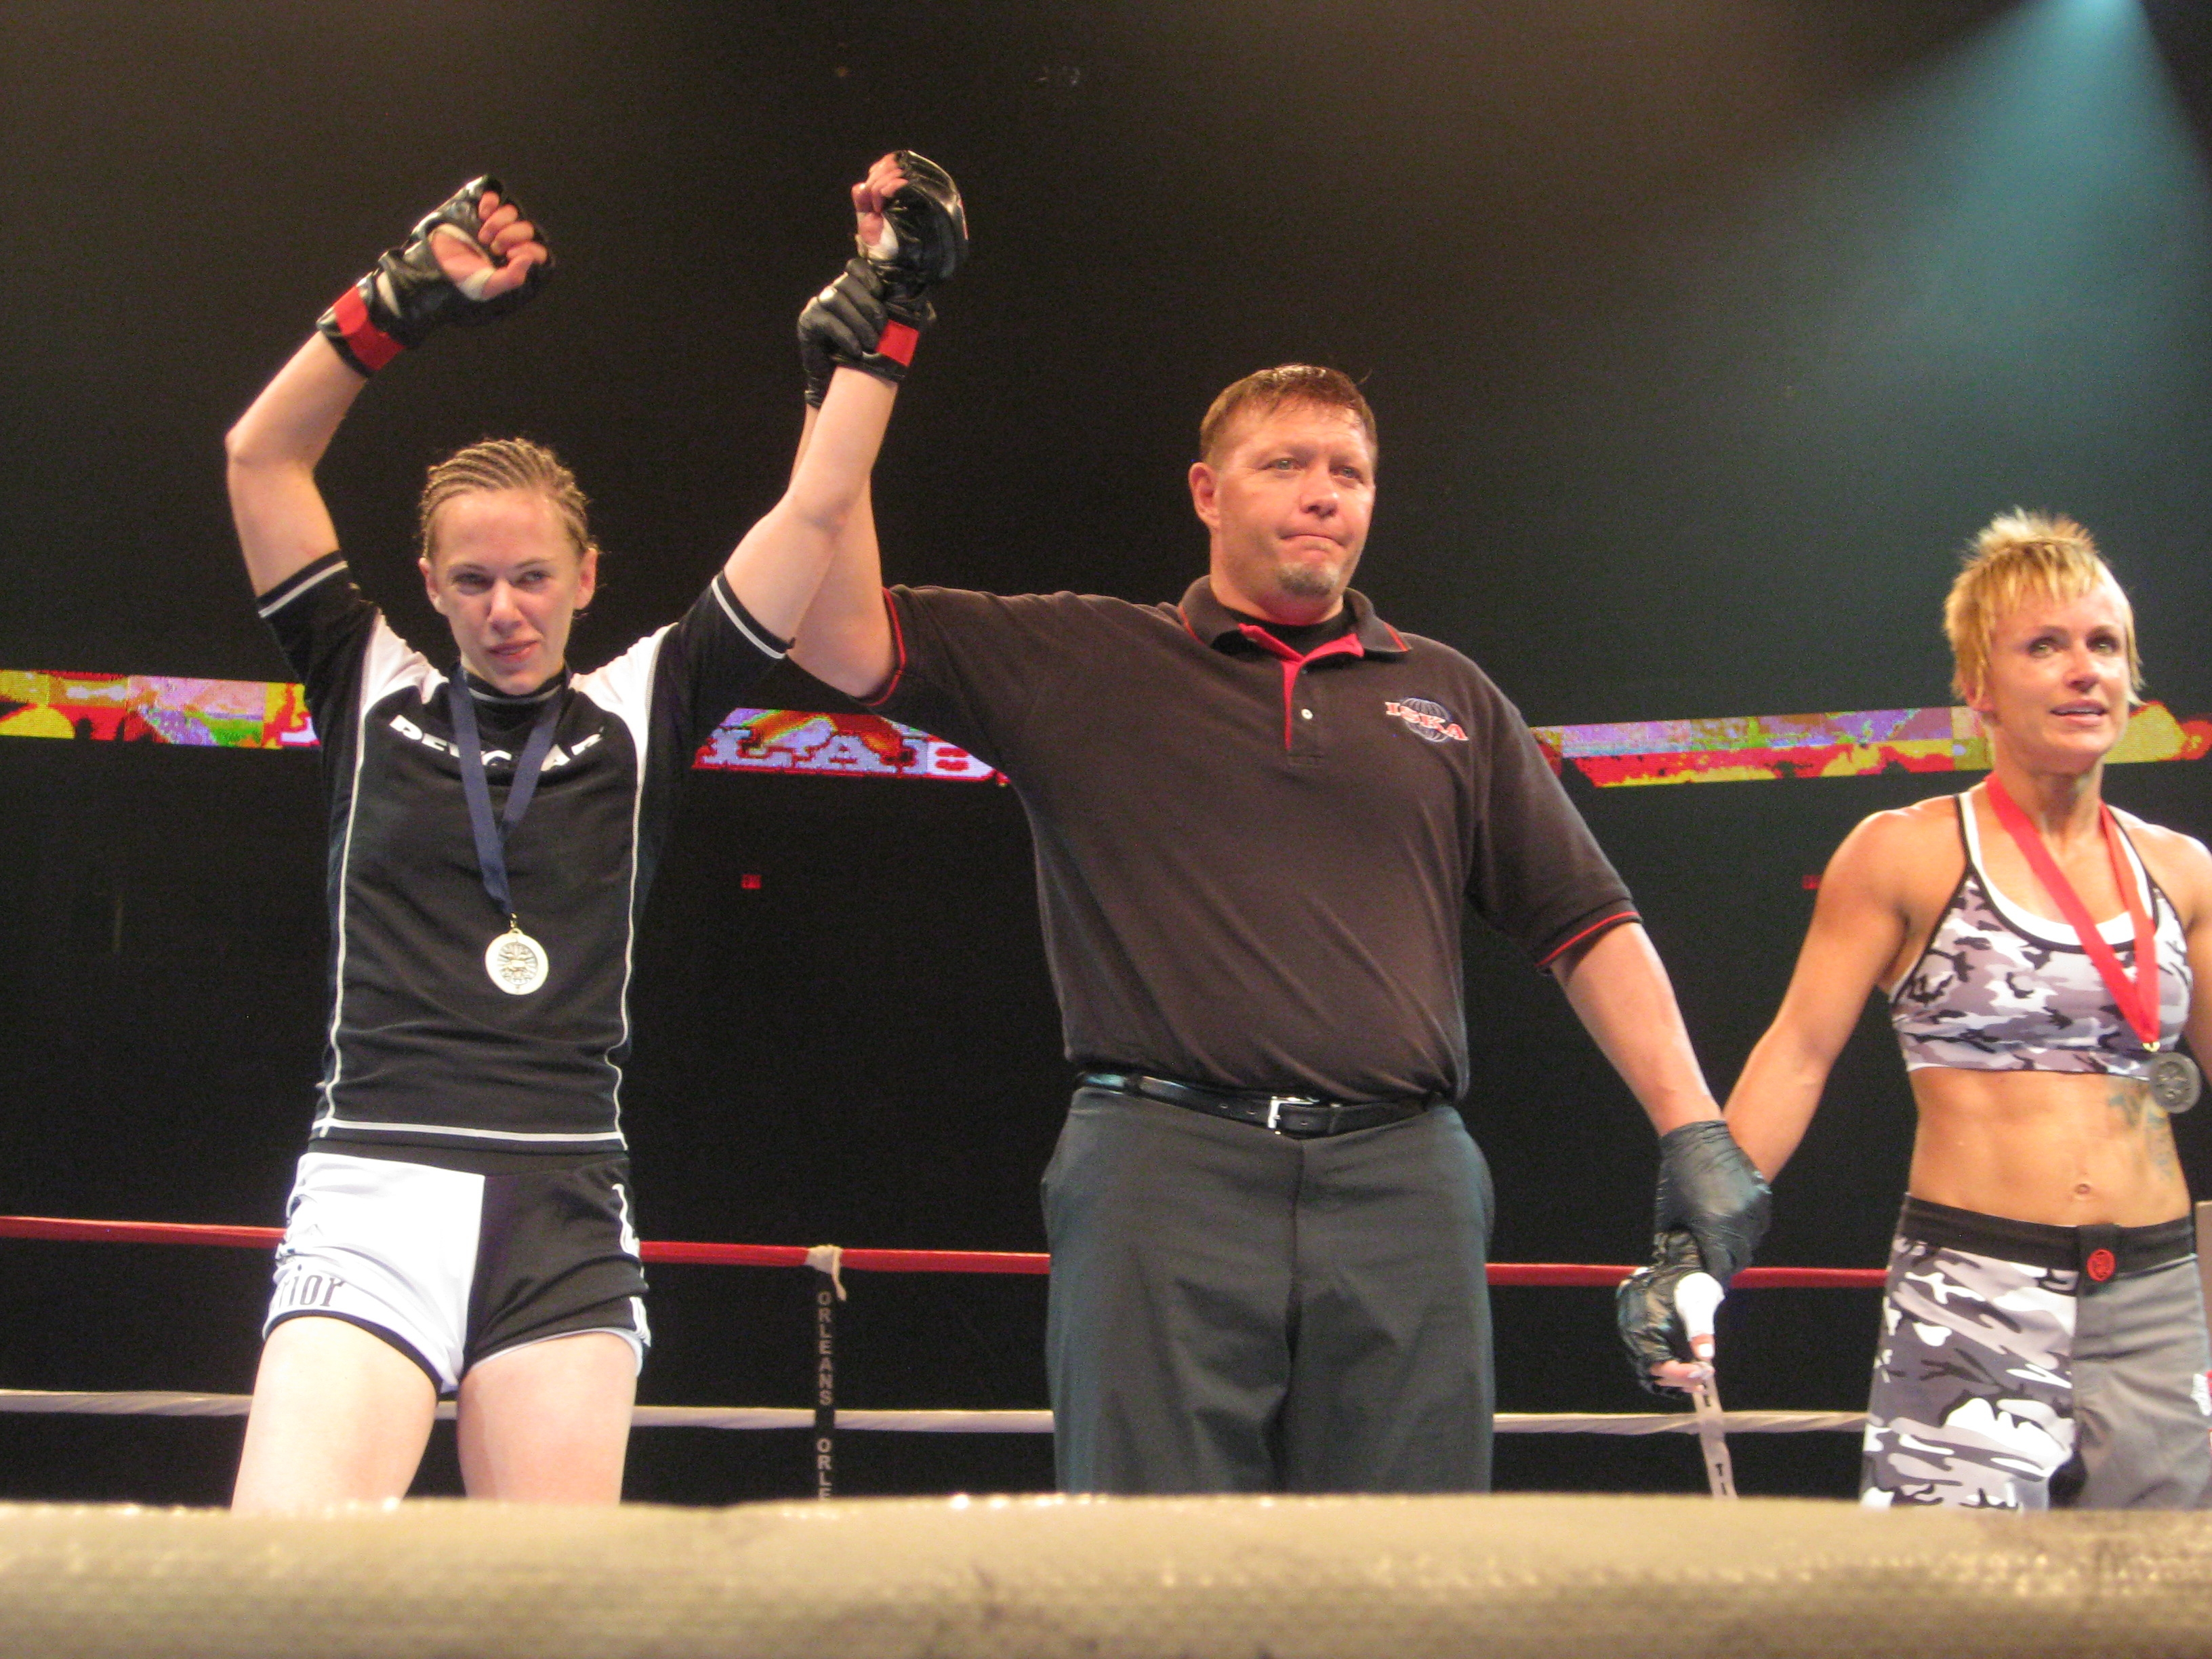 Kate McGray won her MMA debut by unanimous decision.